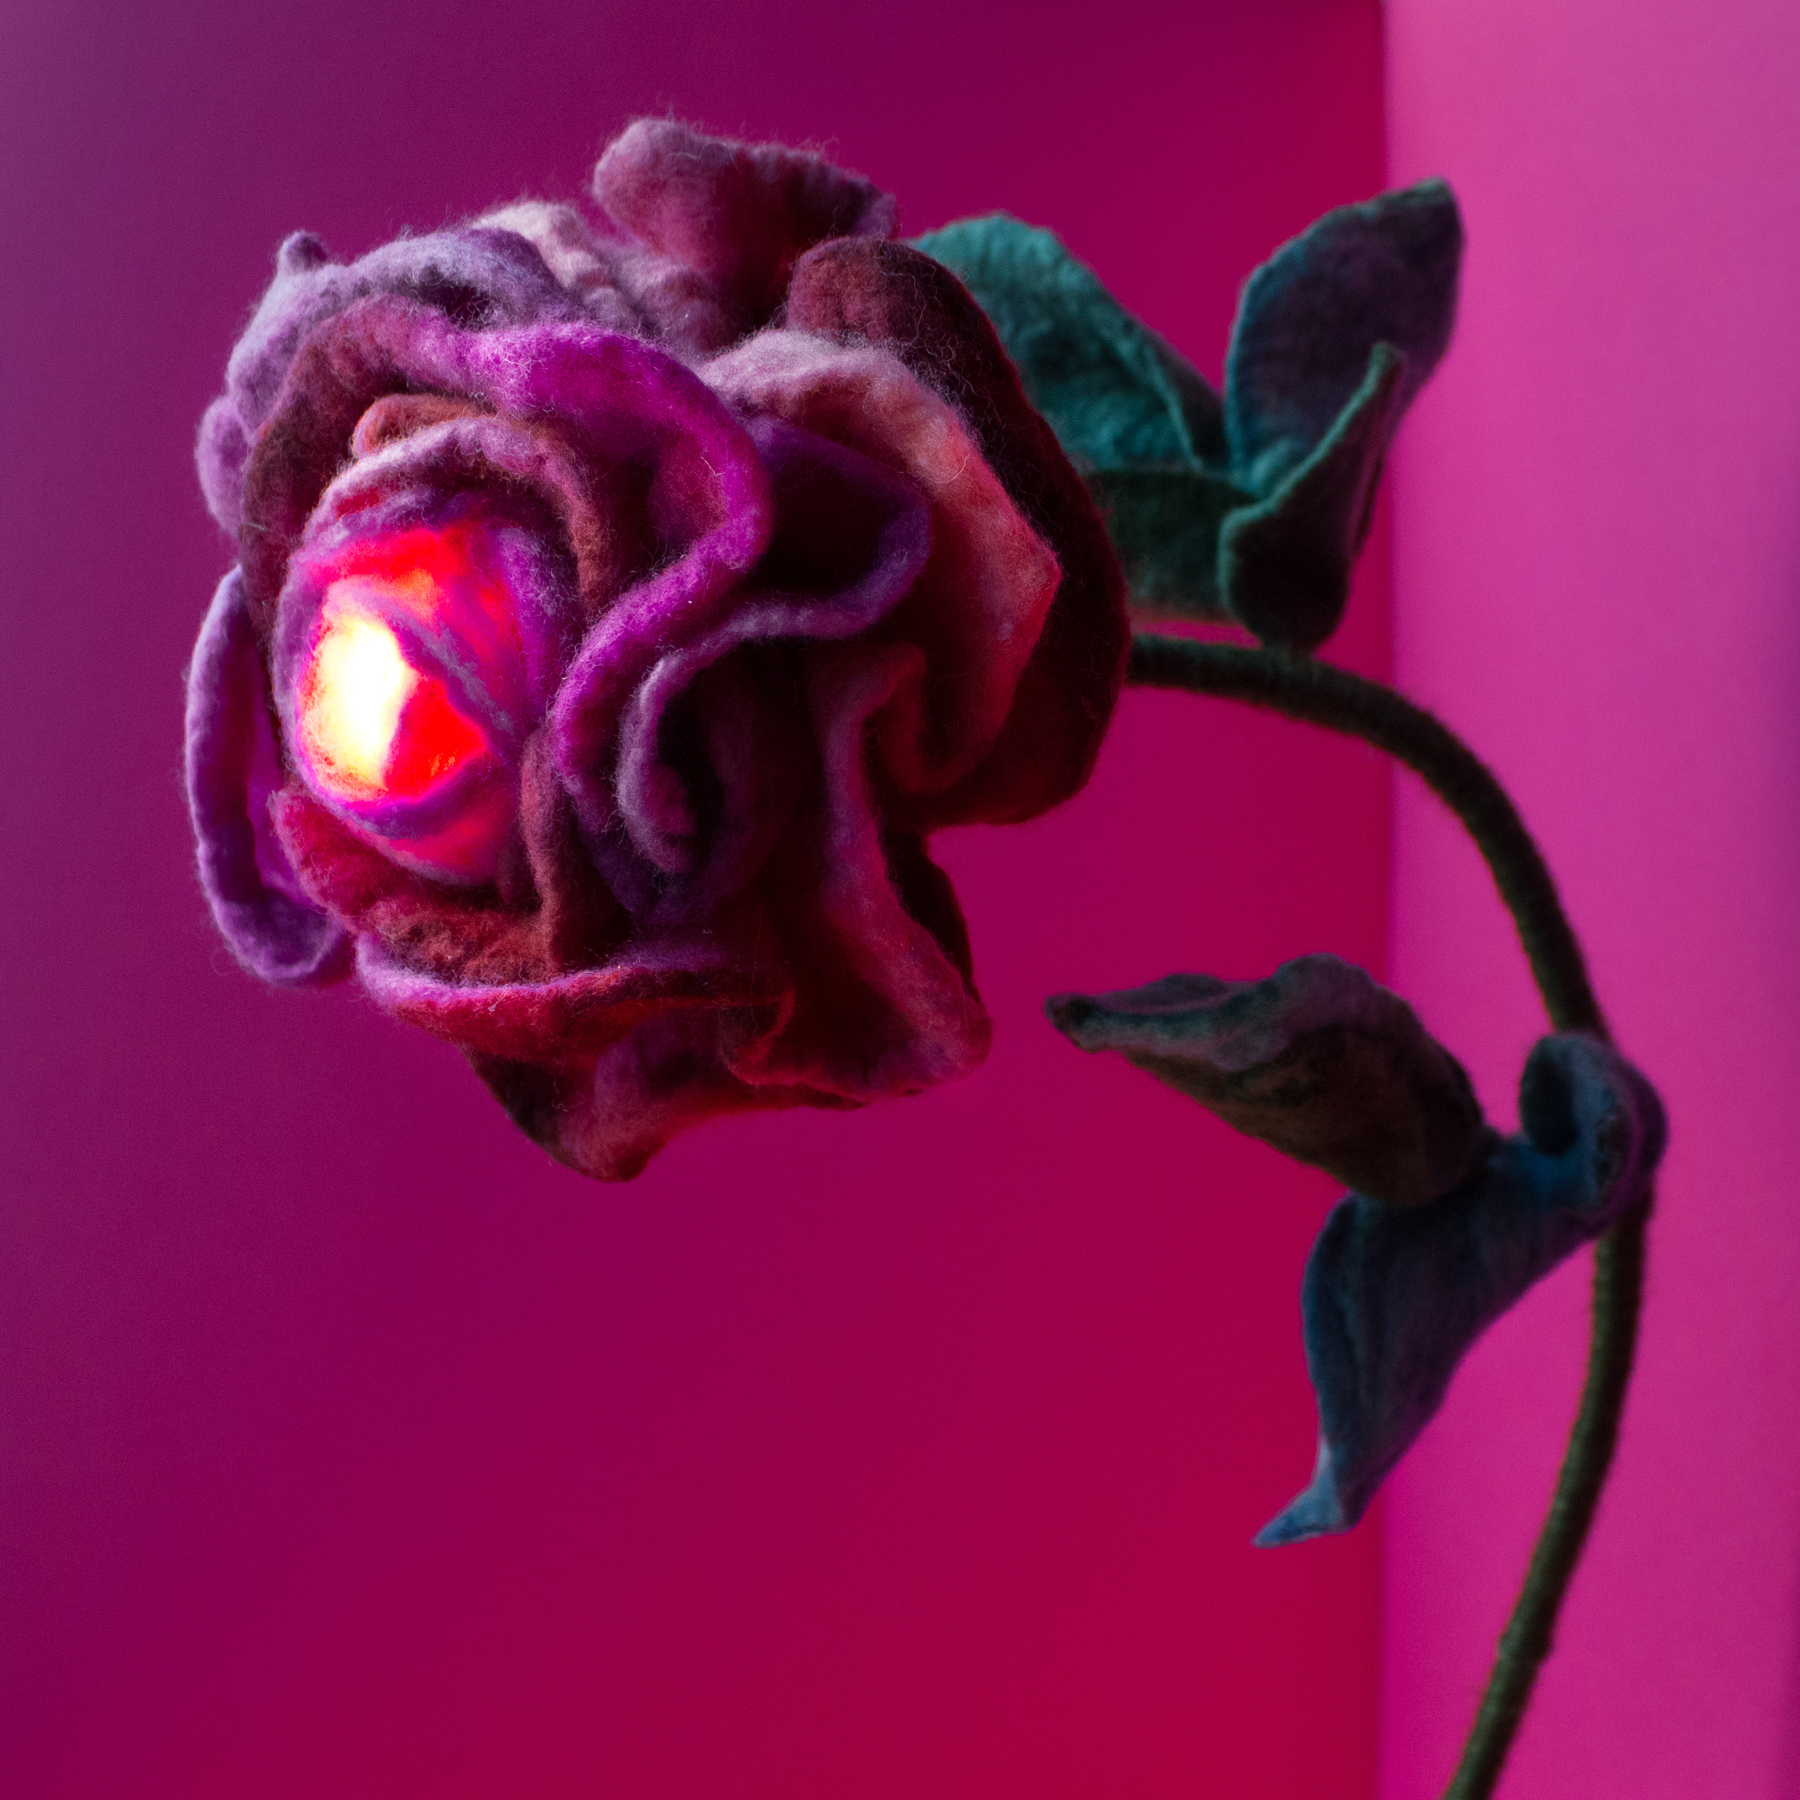 felt-flower-lamp_Wine-Rose_Adelya-Tumasyeva_2.jpg